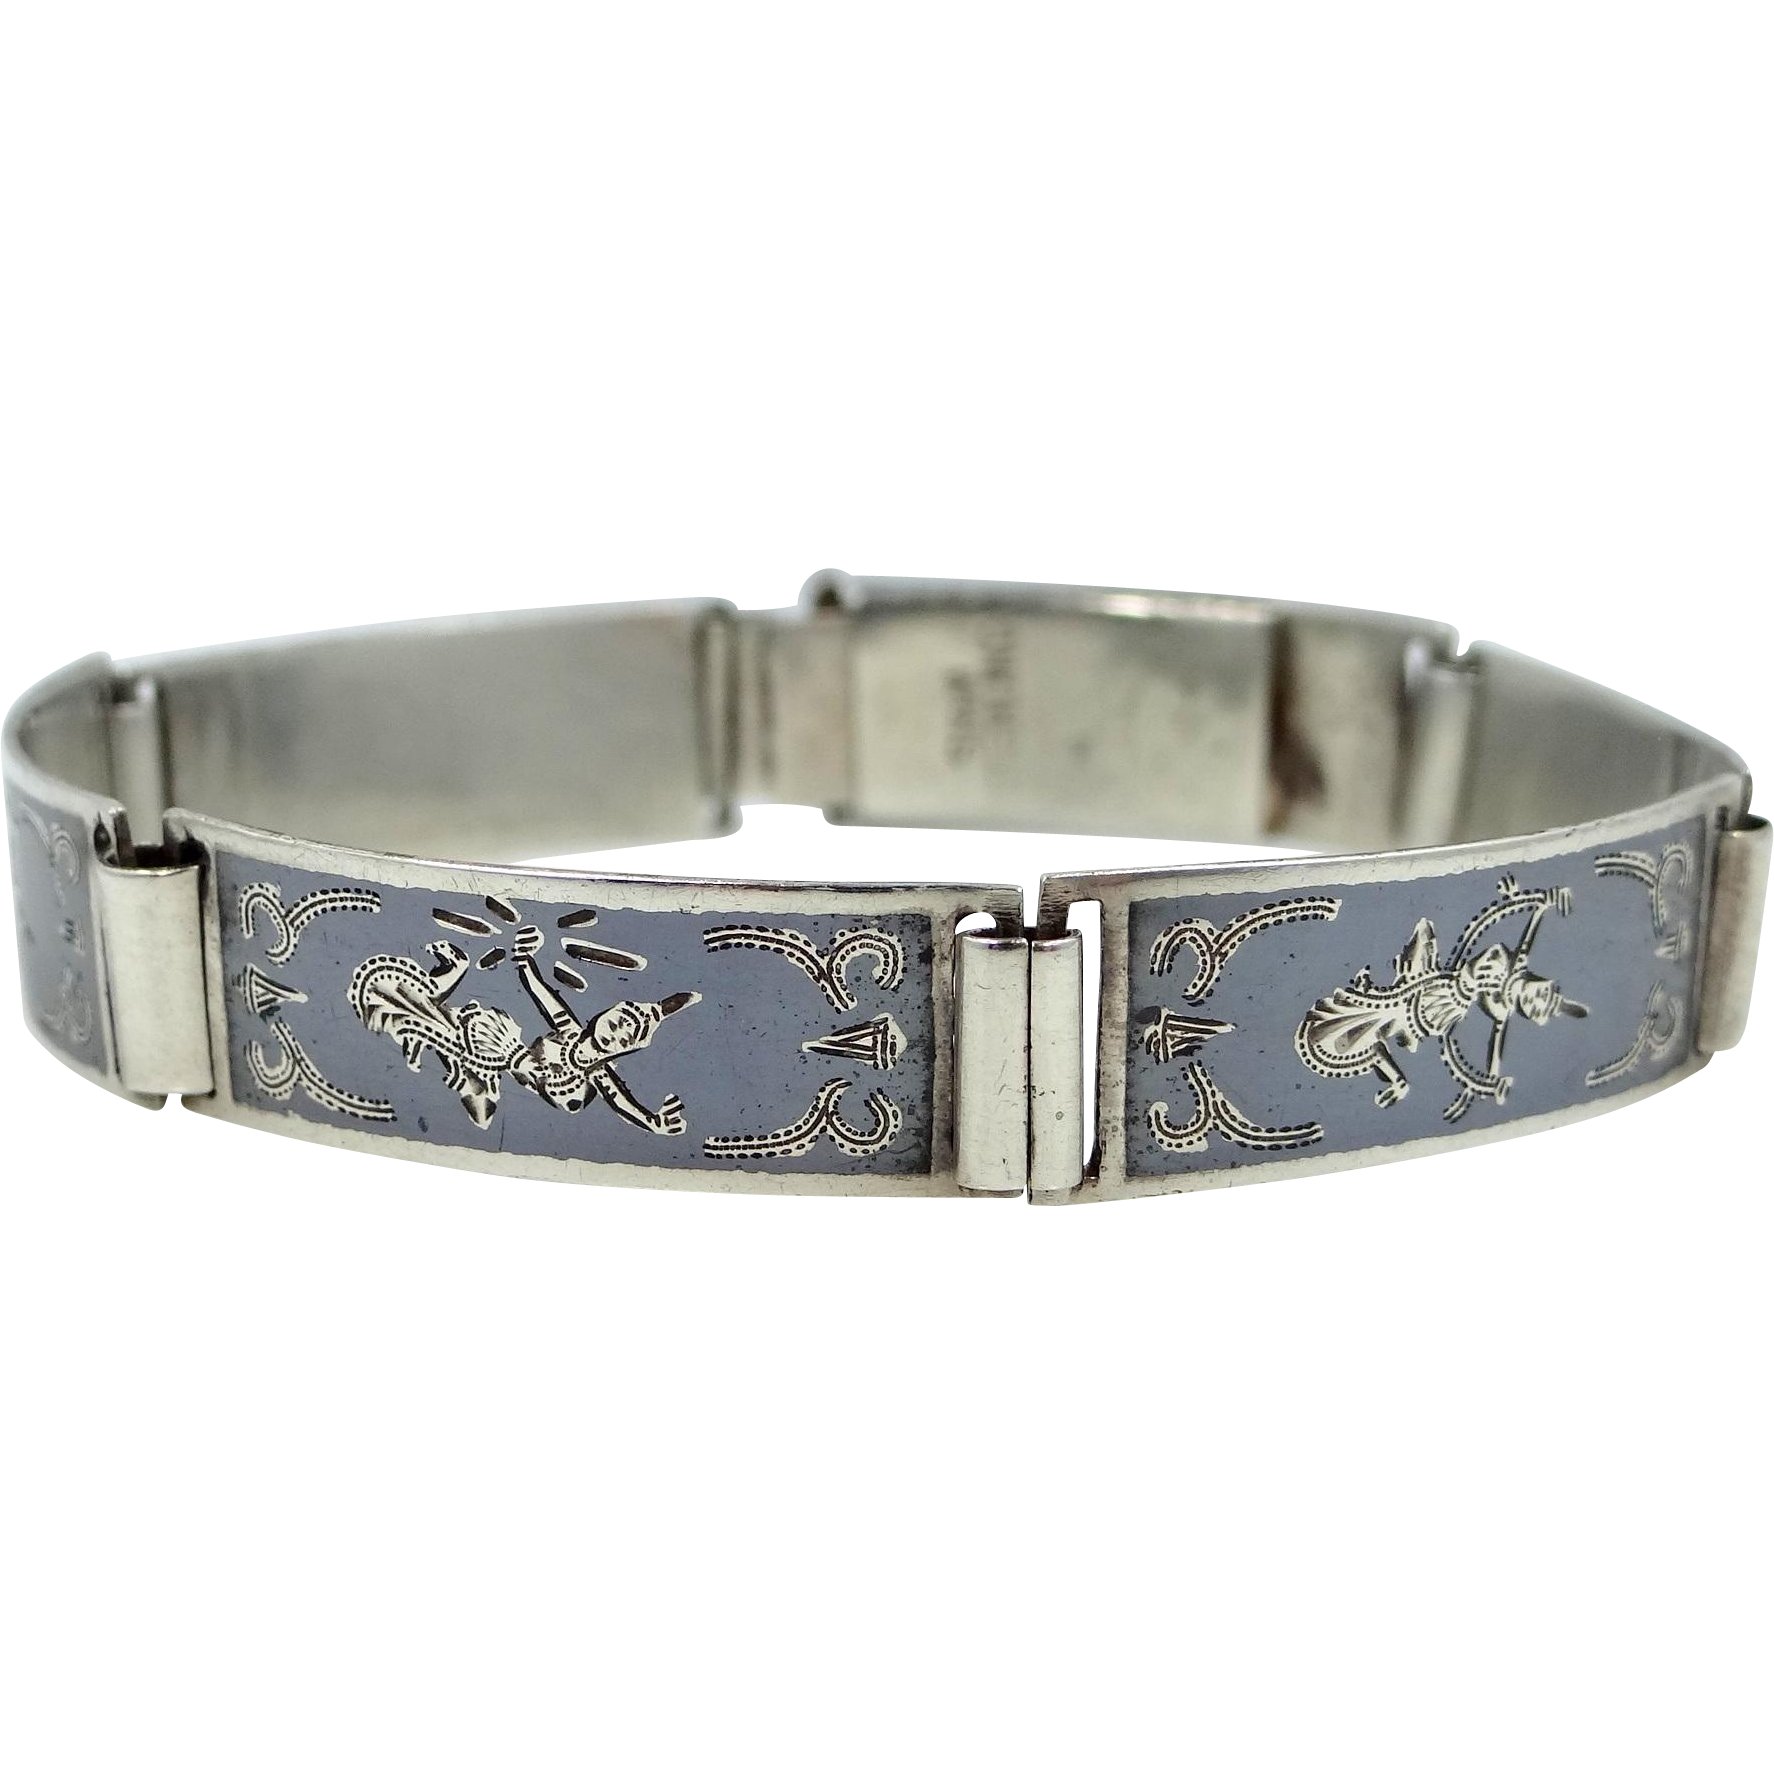 siam sterling silver bracelet in mint condition from mur